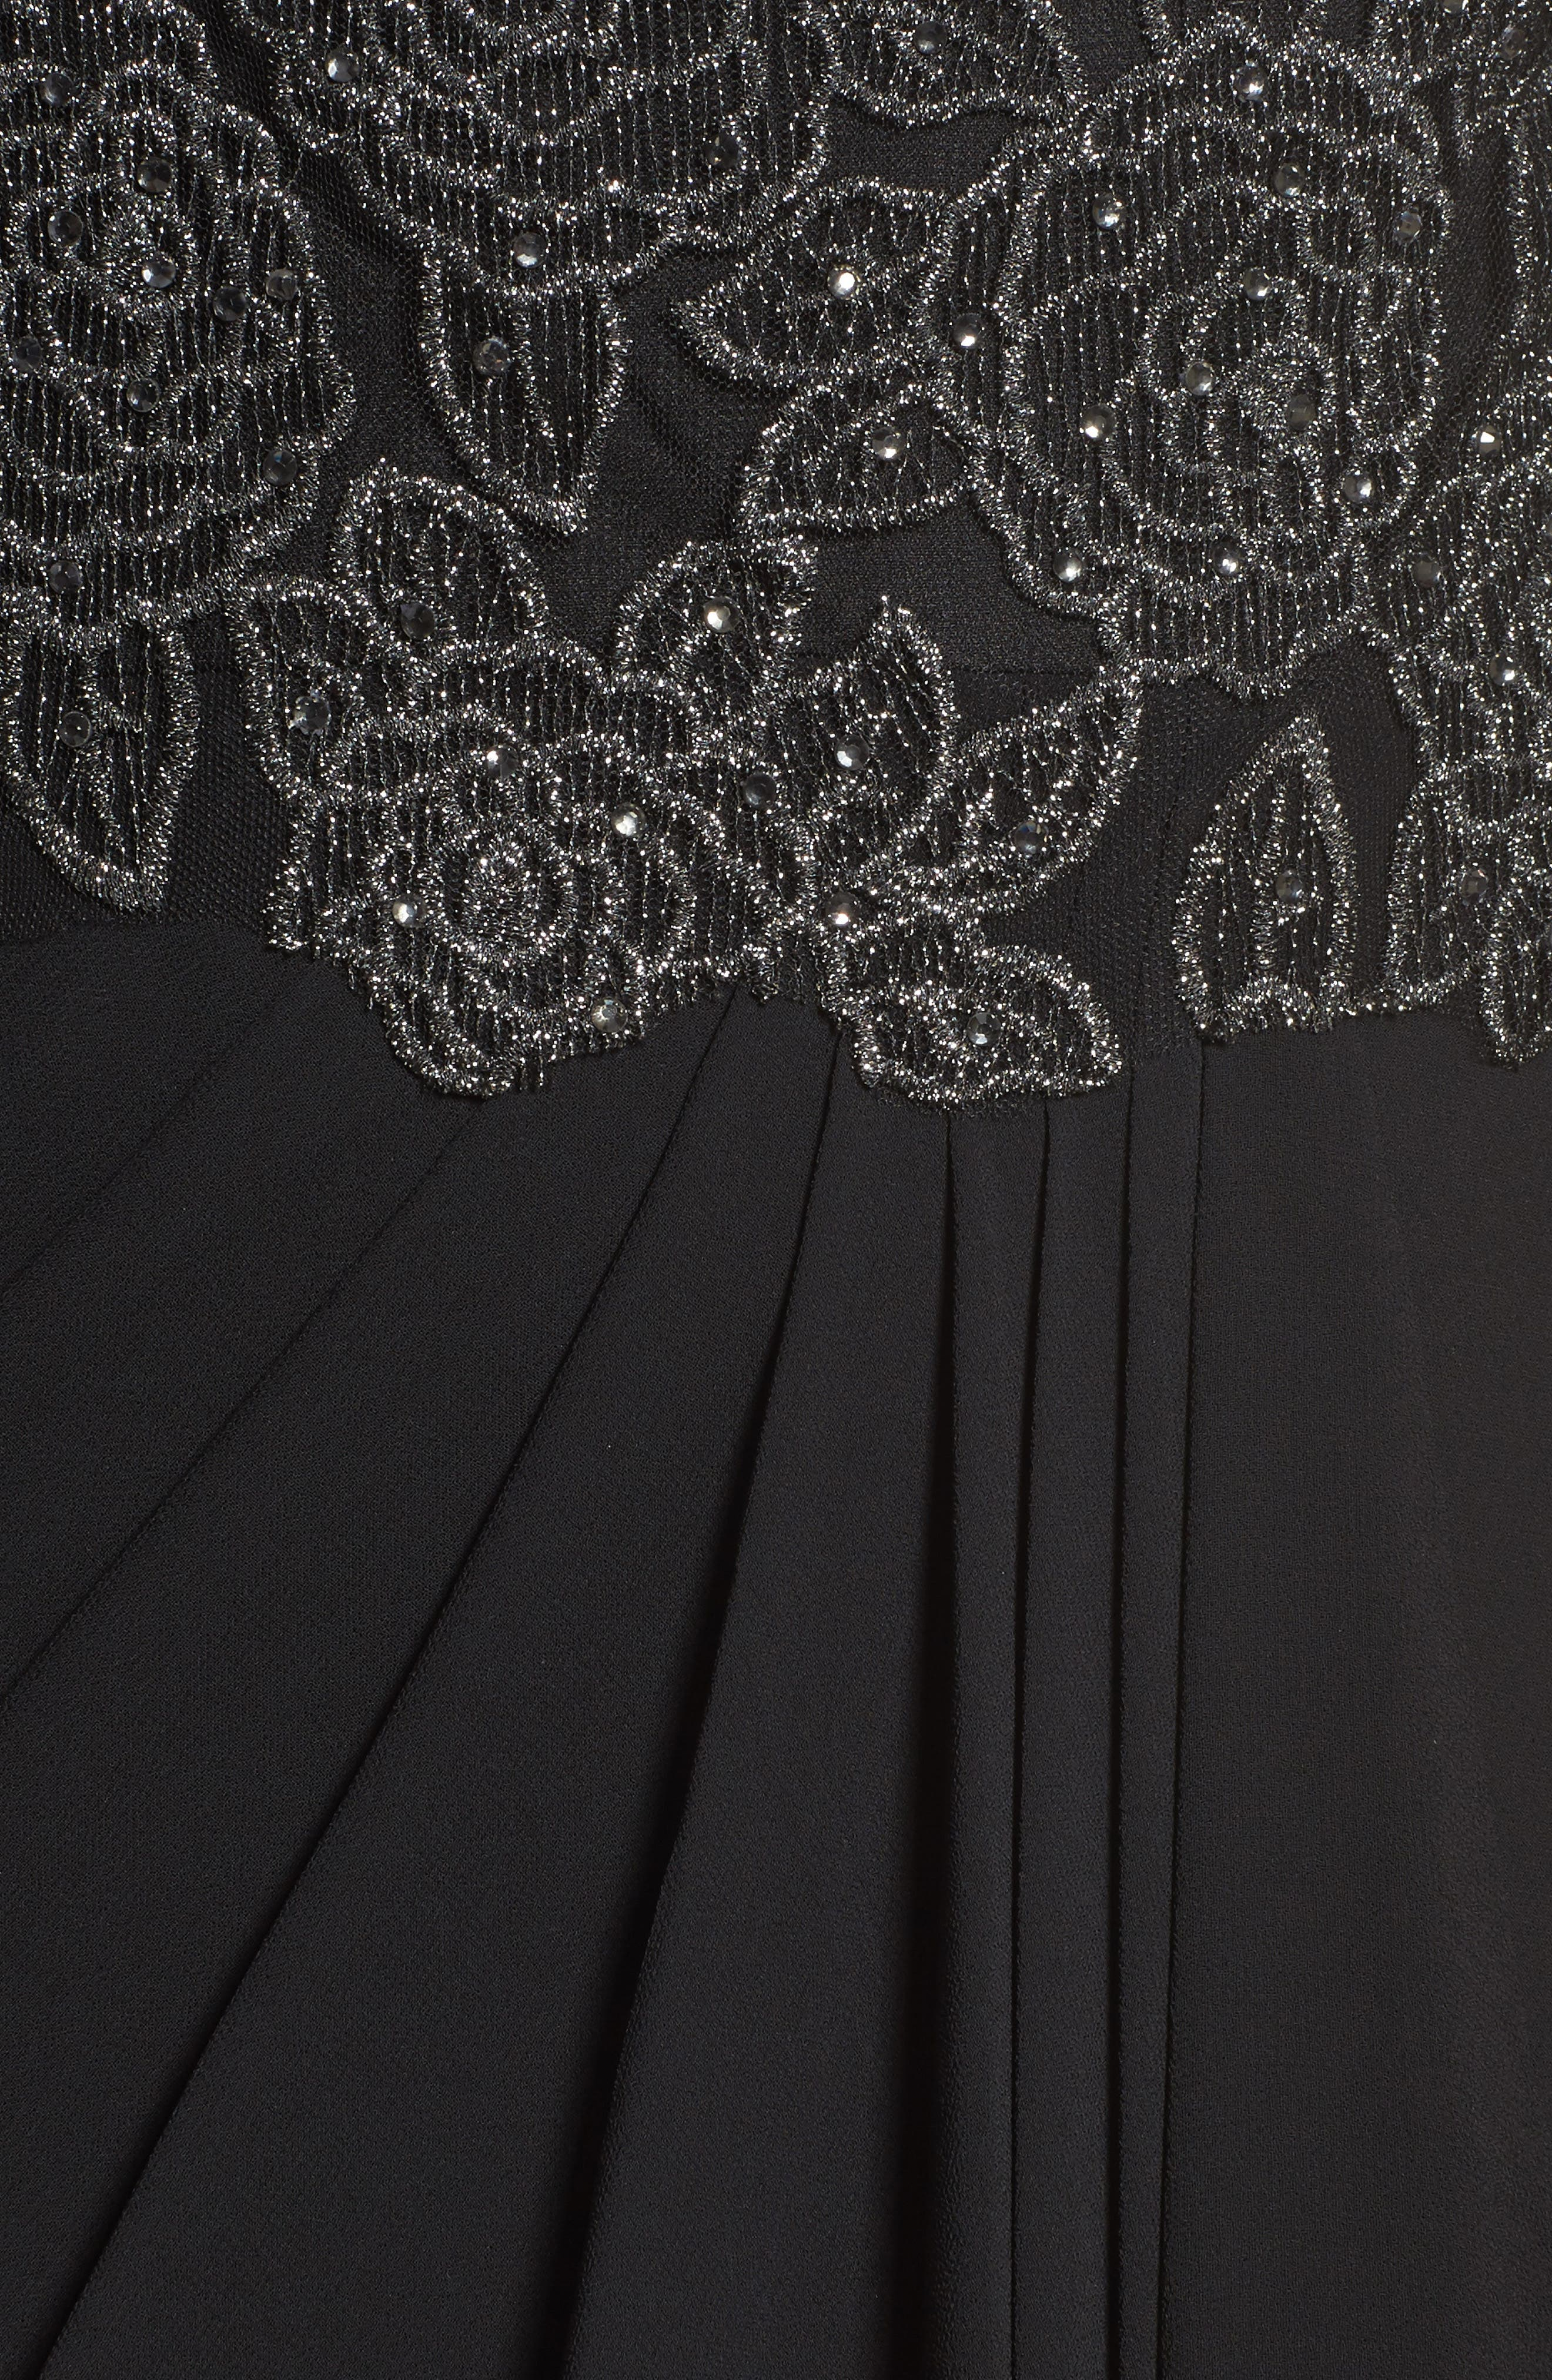 Metallic Embroidered A-Line Gown,                             Alternate thumbnail 5, color,                             Black